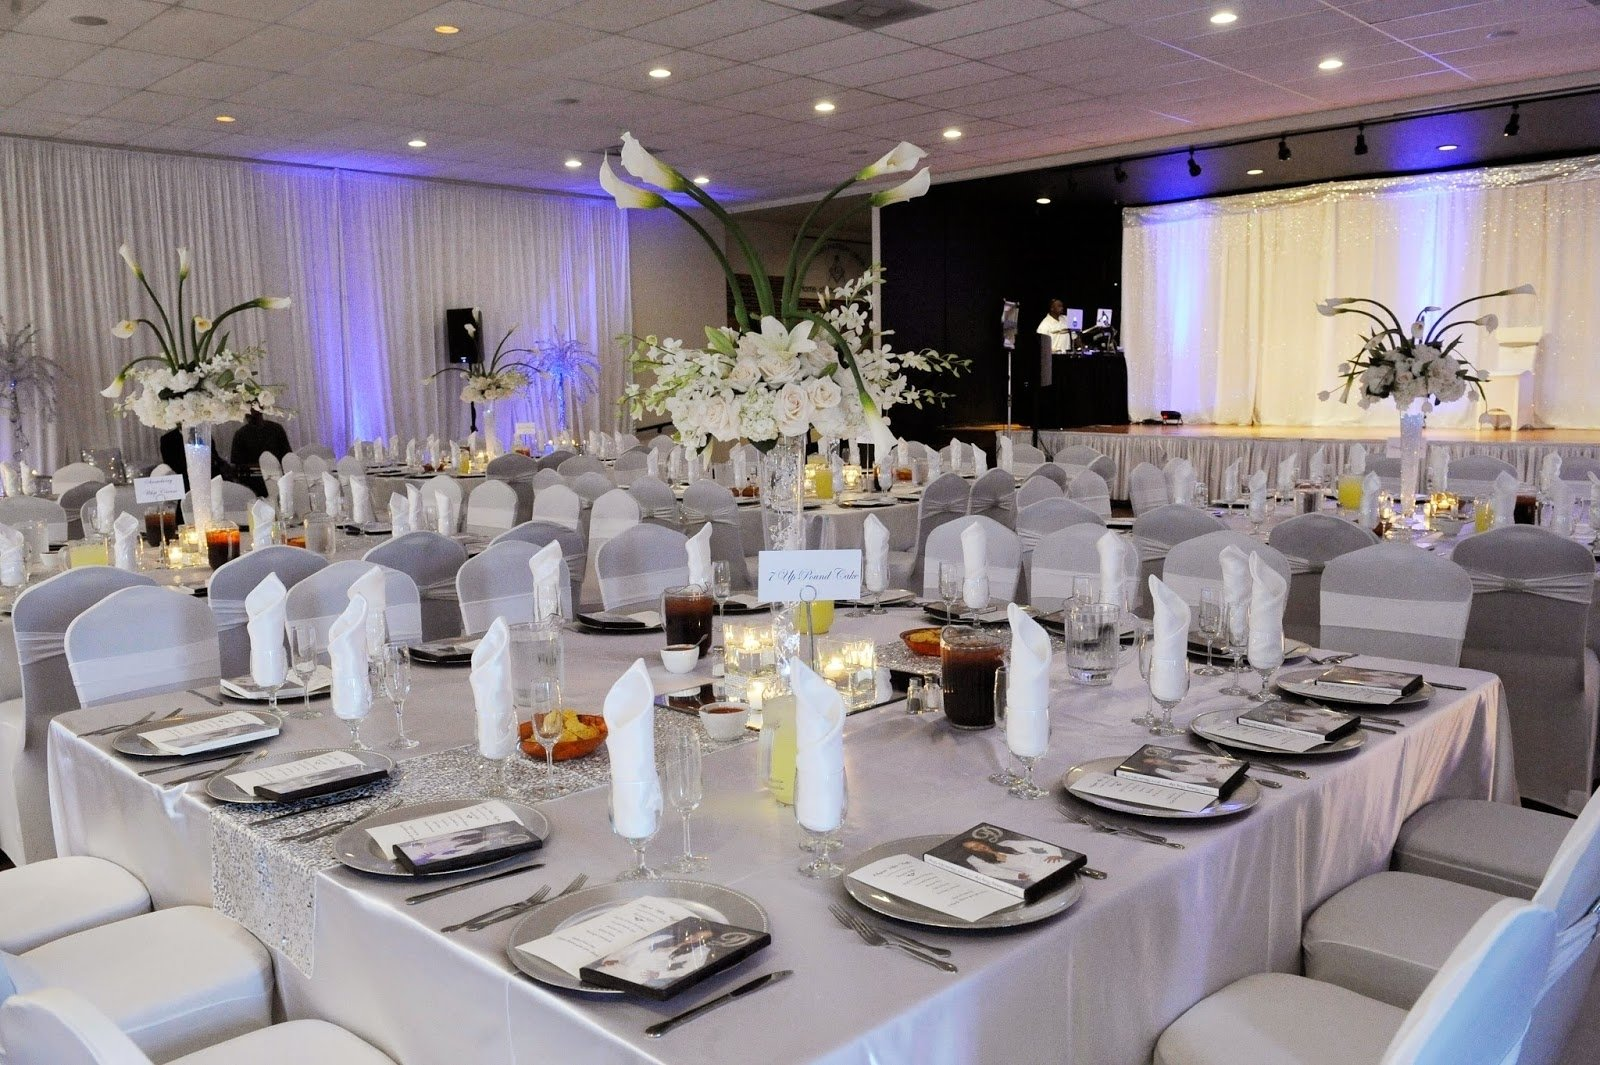 10 Wonderful All White Birthday Party Ideas sbd events the event specialist all white party 2020